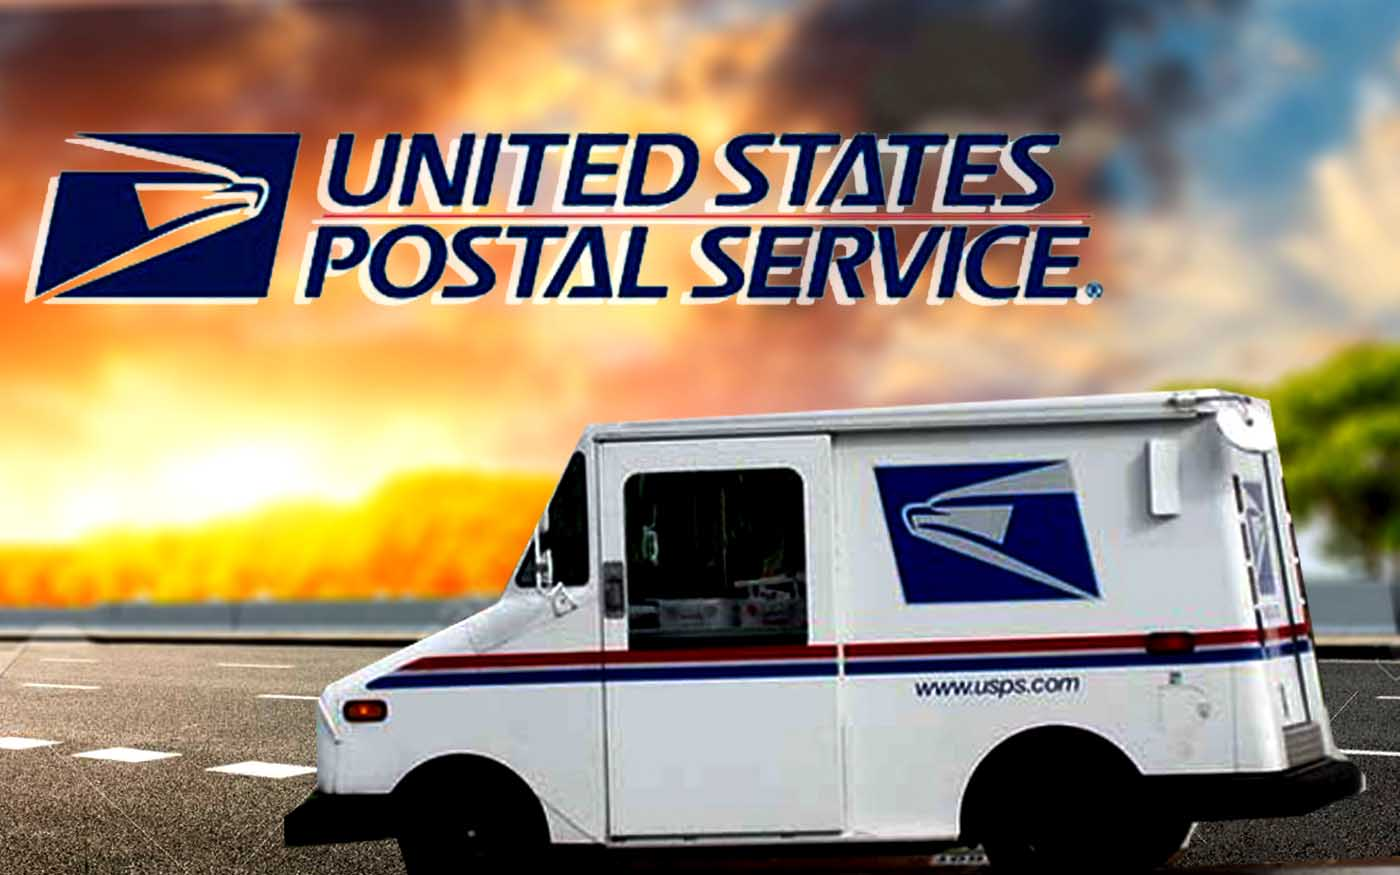 What Time Does USPS Deliver